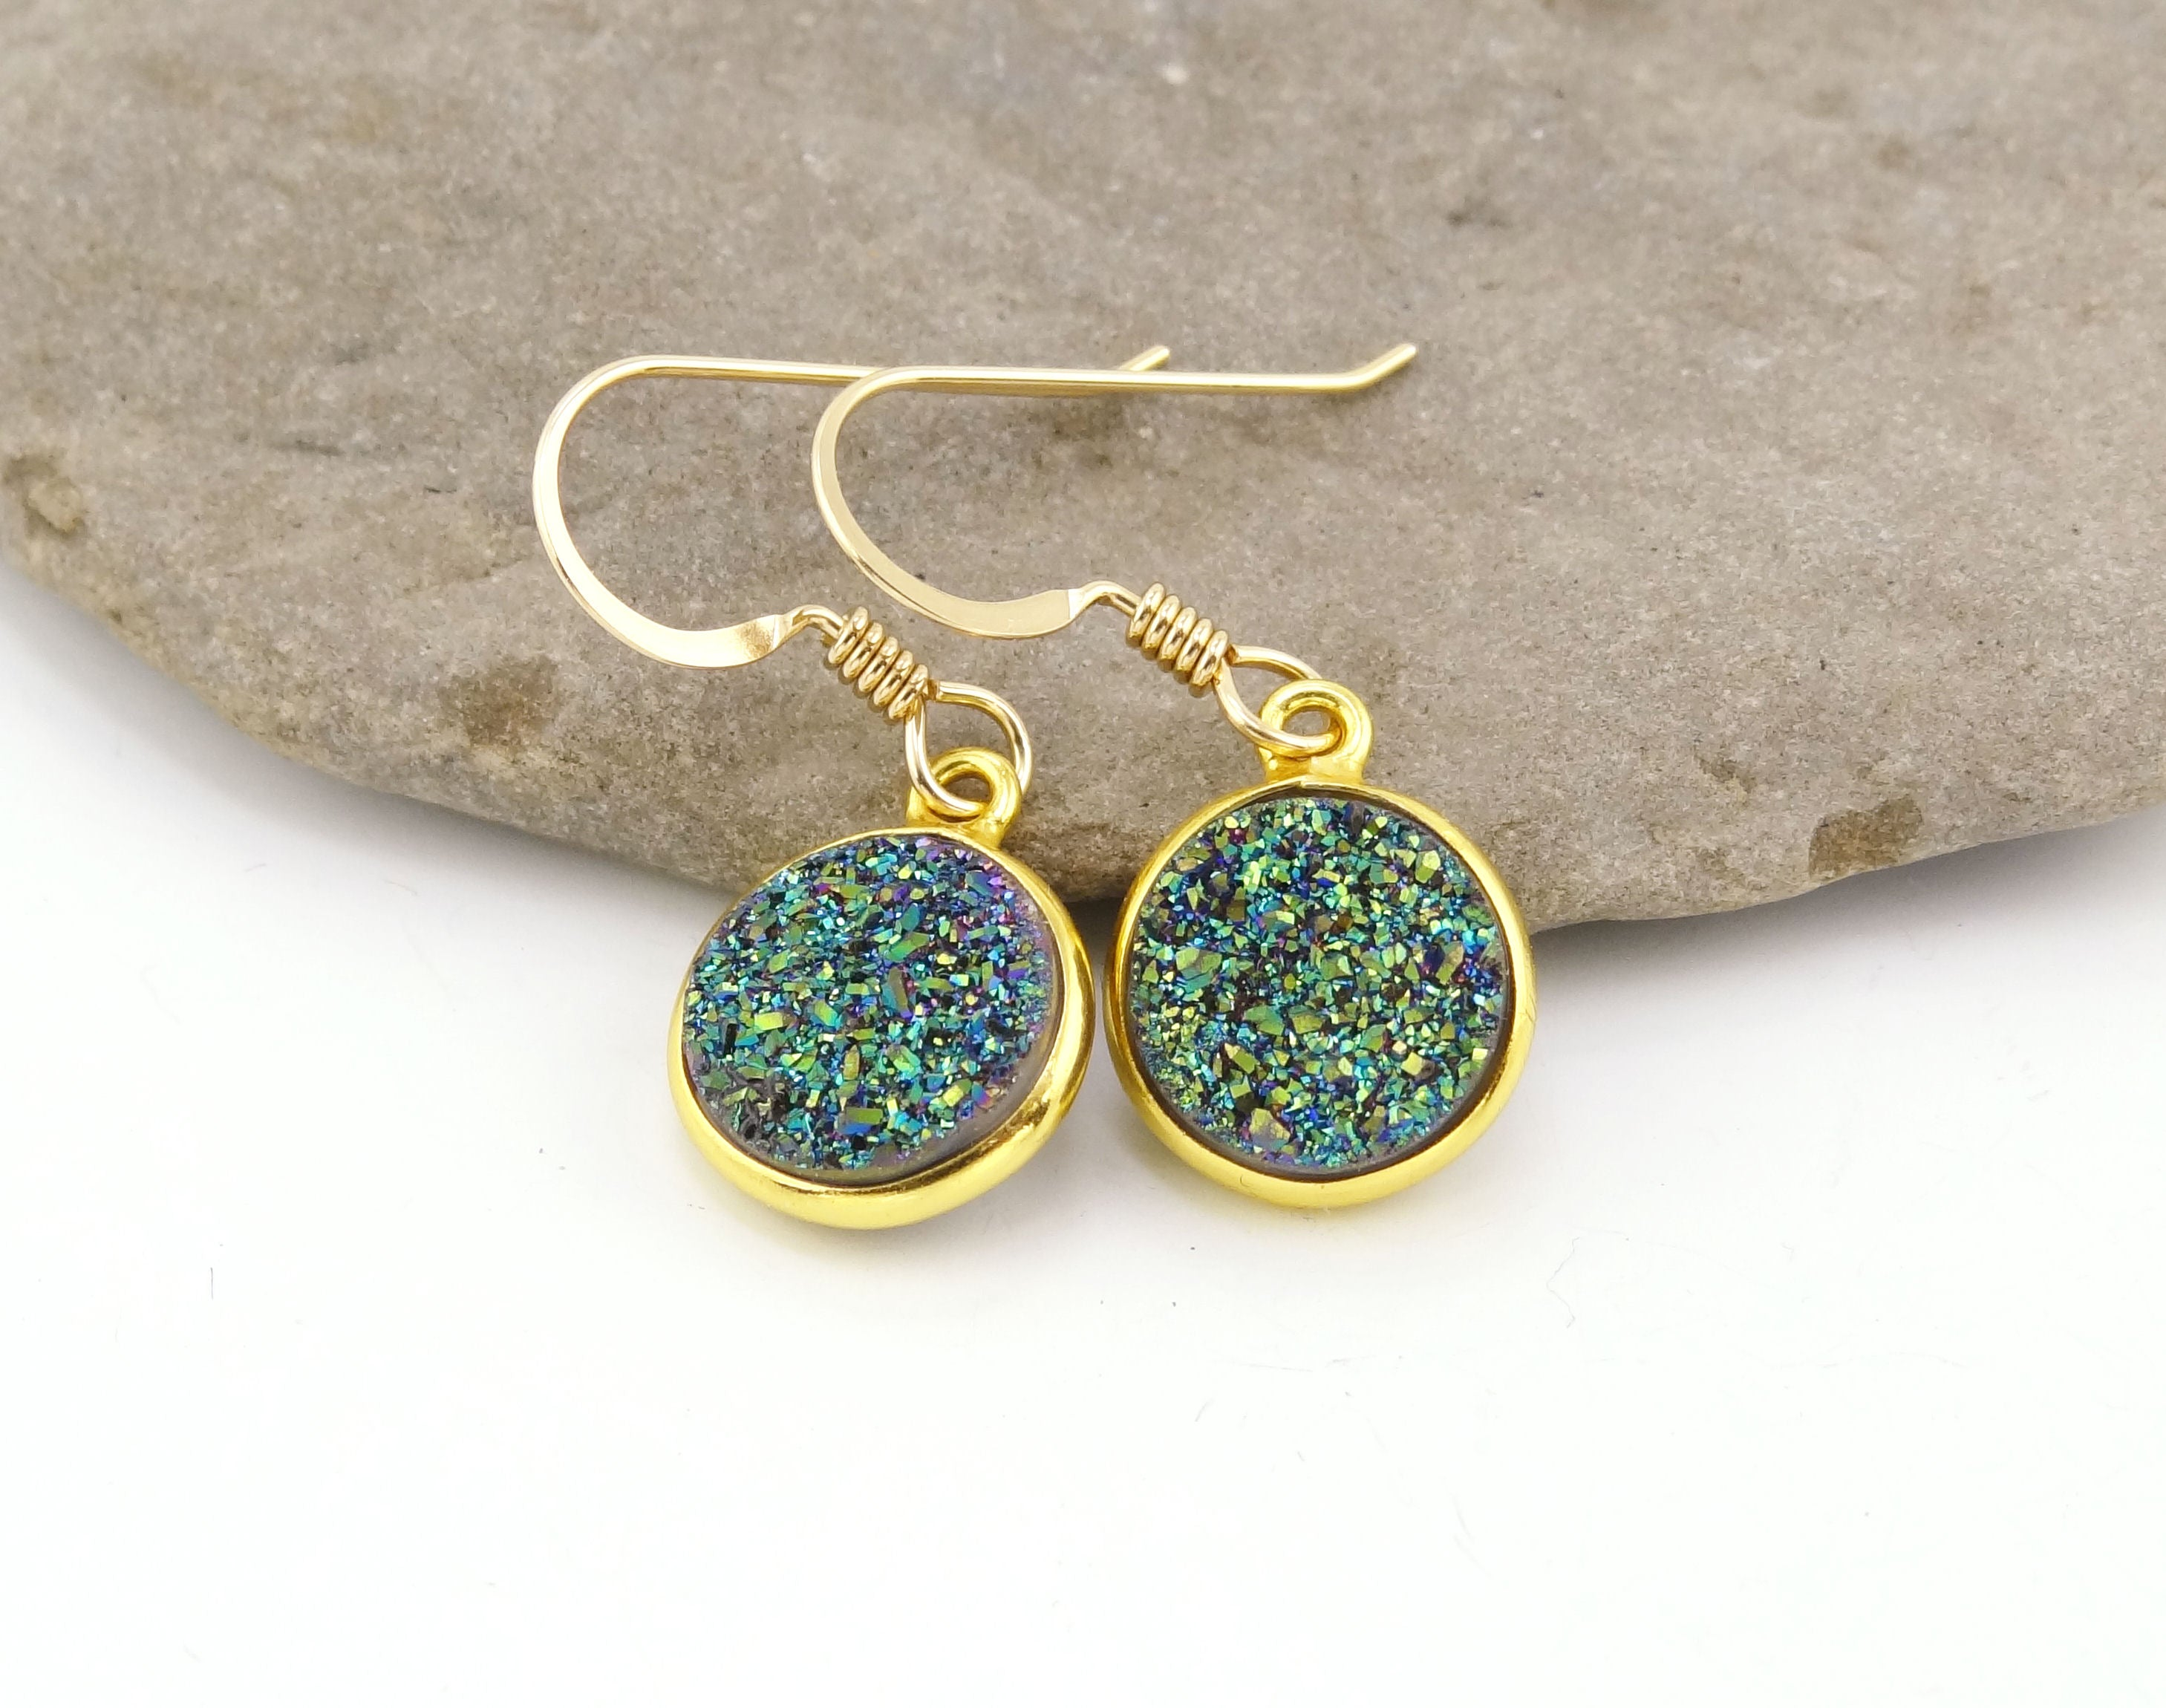 Round Druzy Earrings Iridescent Green With Gold Trim